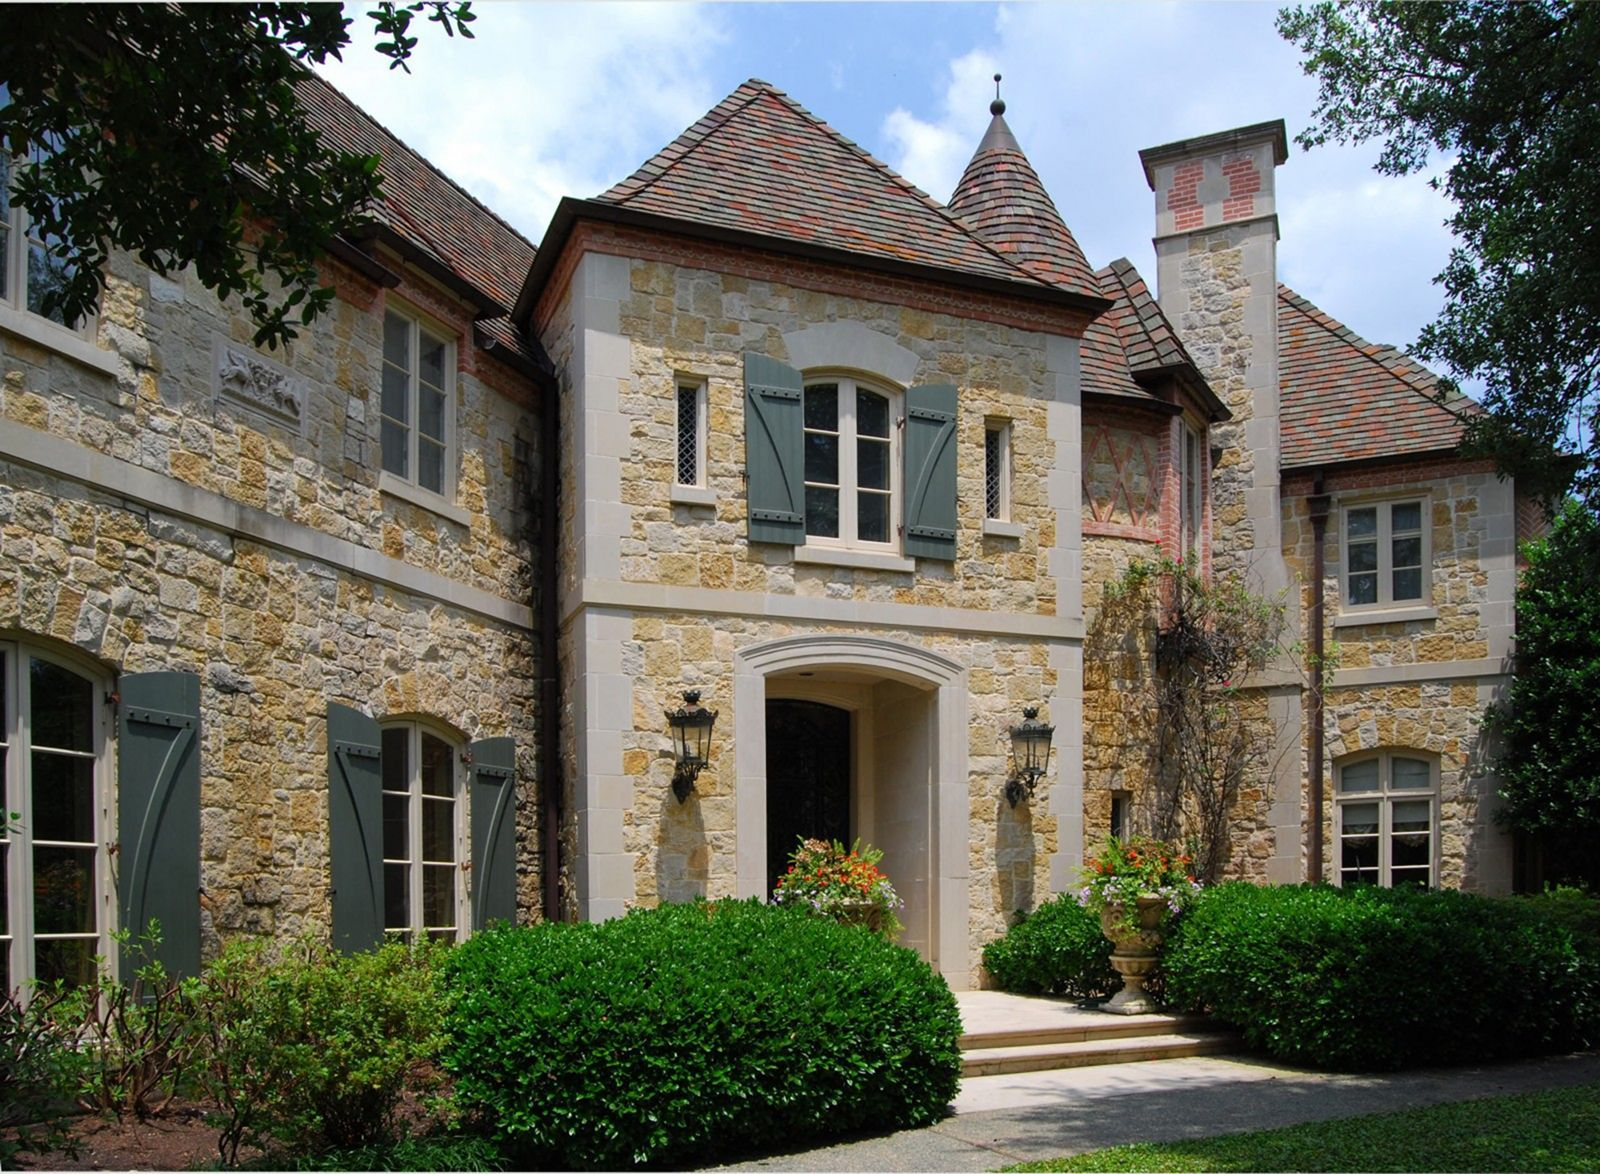 French House Style In 2020 French Style Homes French